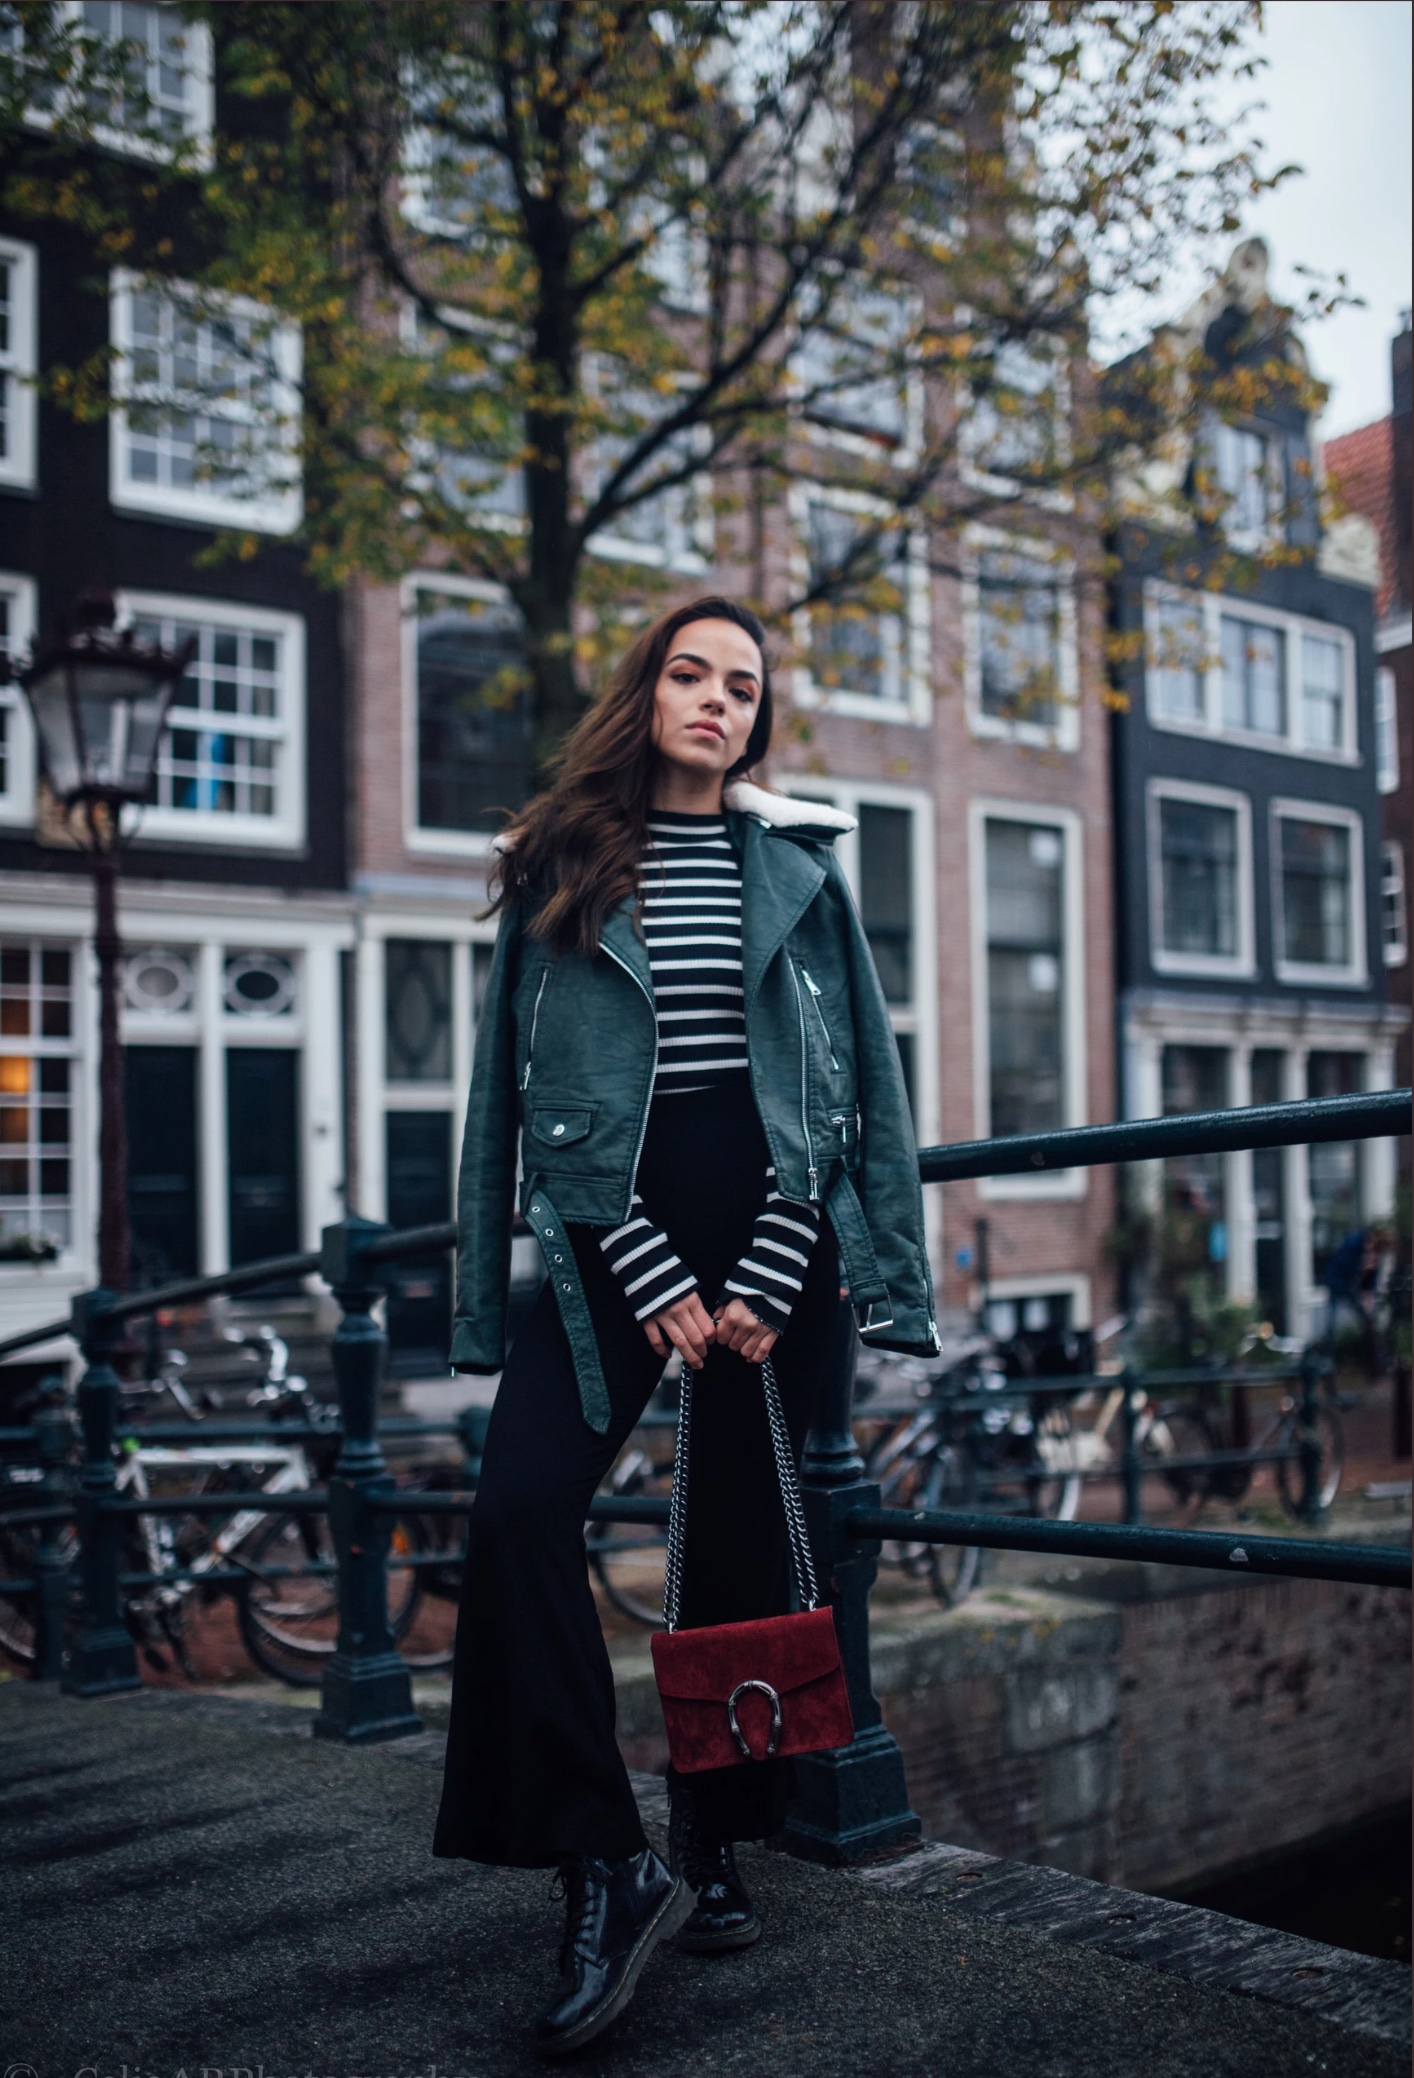 Photoshoot in Amsterdam